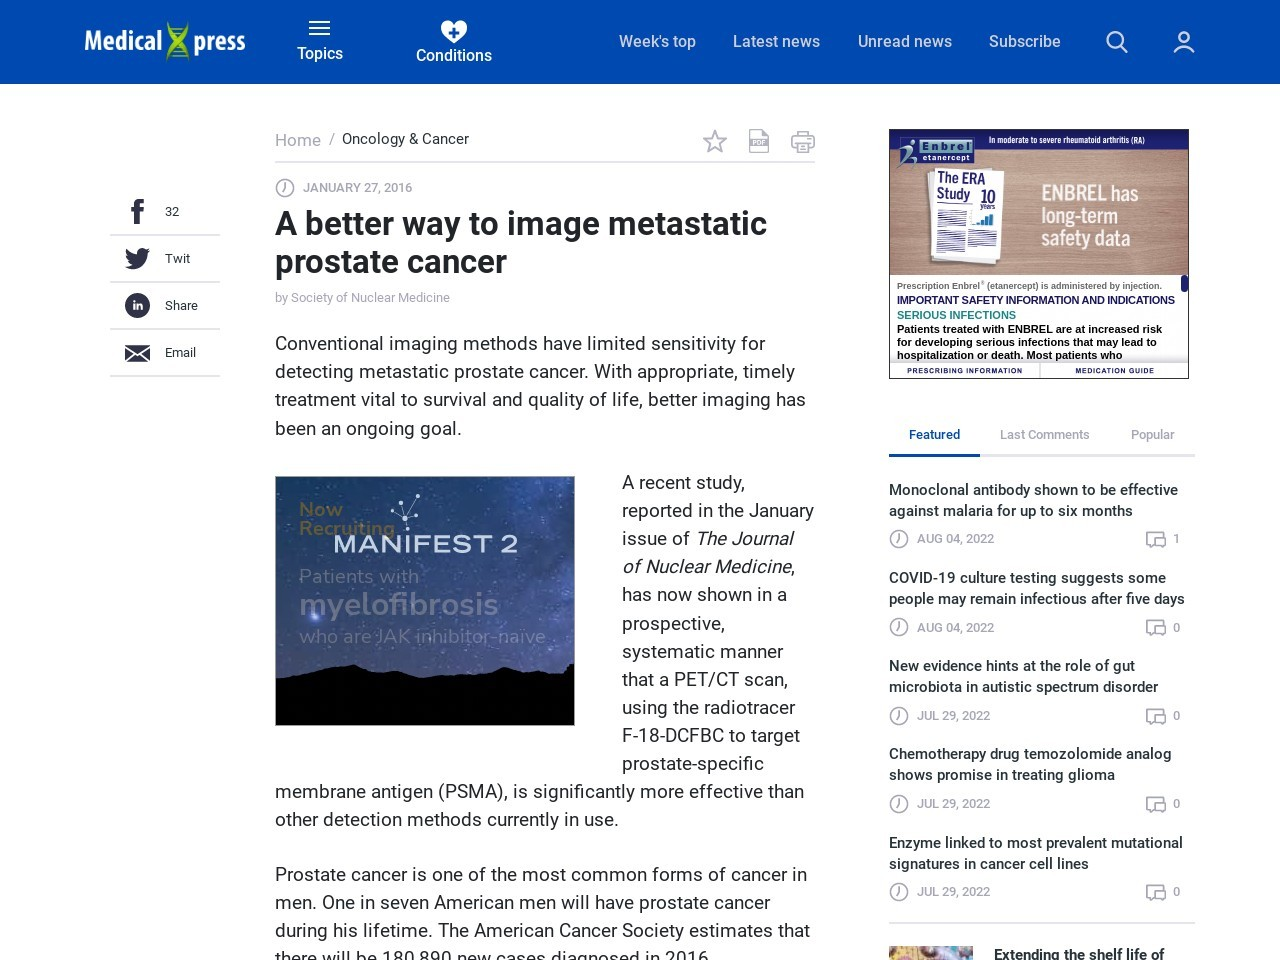 A better way to image metastatic prostate cancer